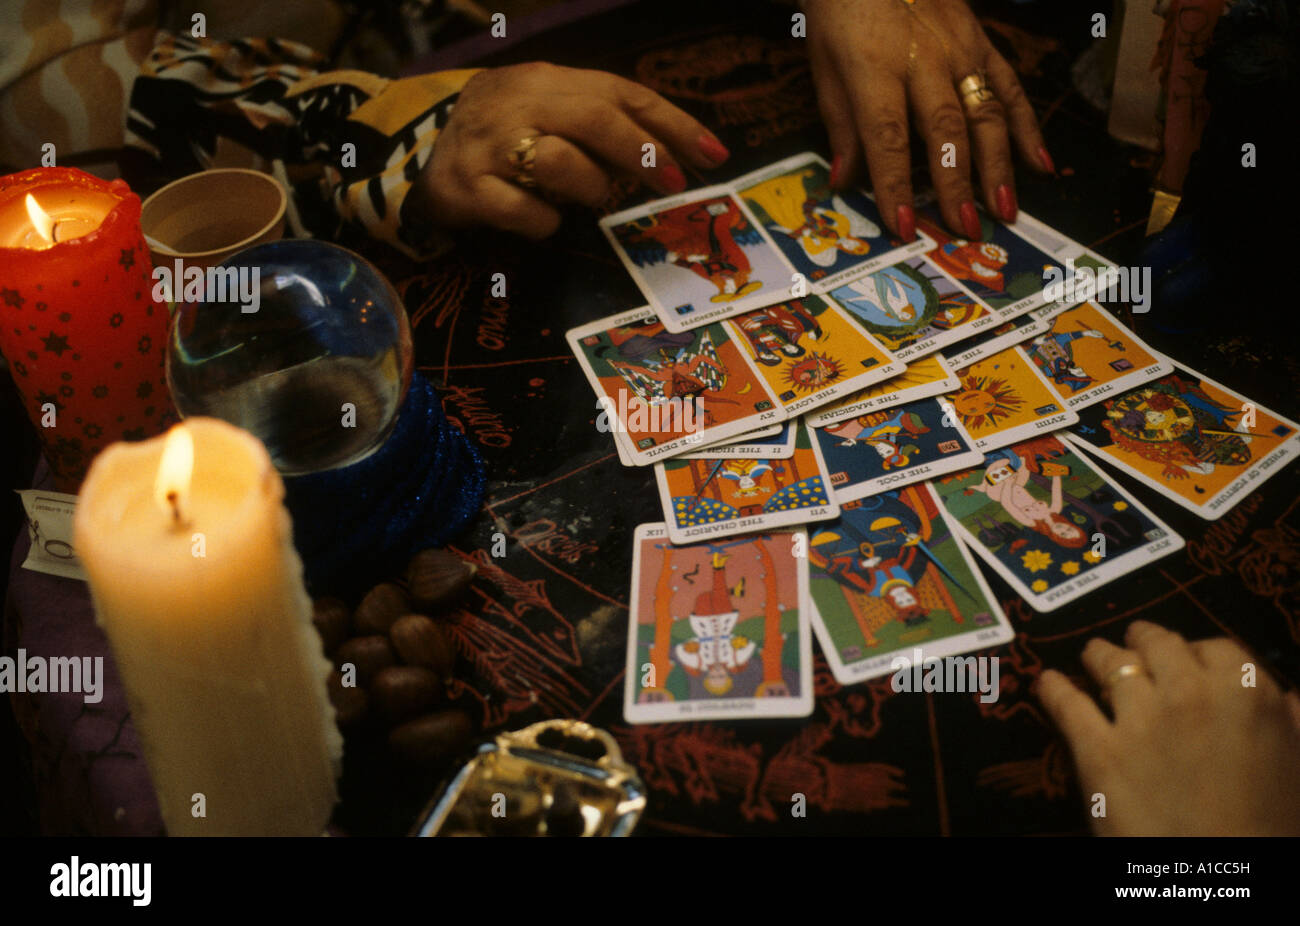 Completely new astrology fortune teller tarot card reader psychist Stock Photo  BT69